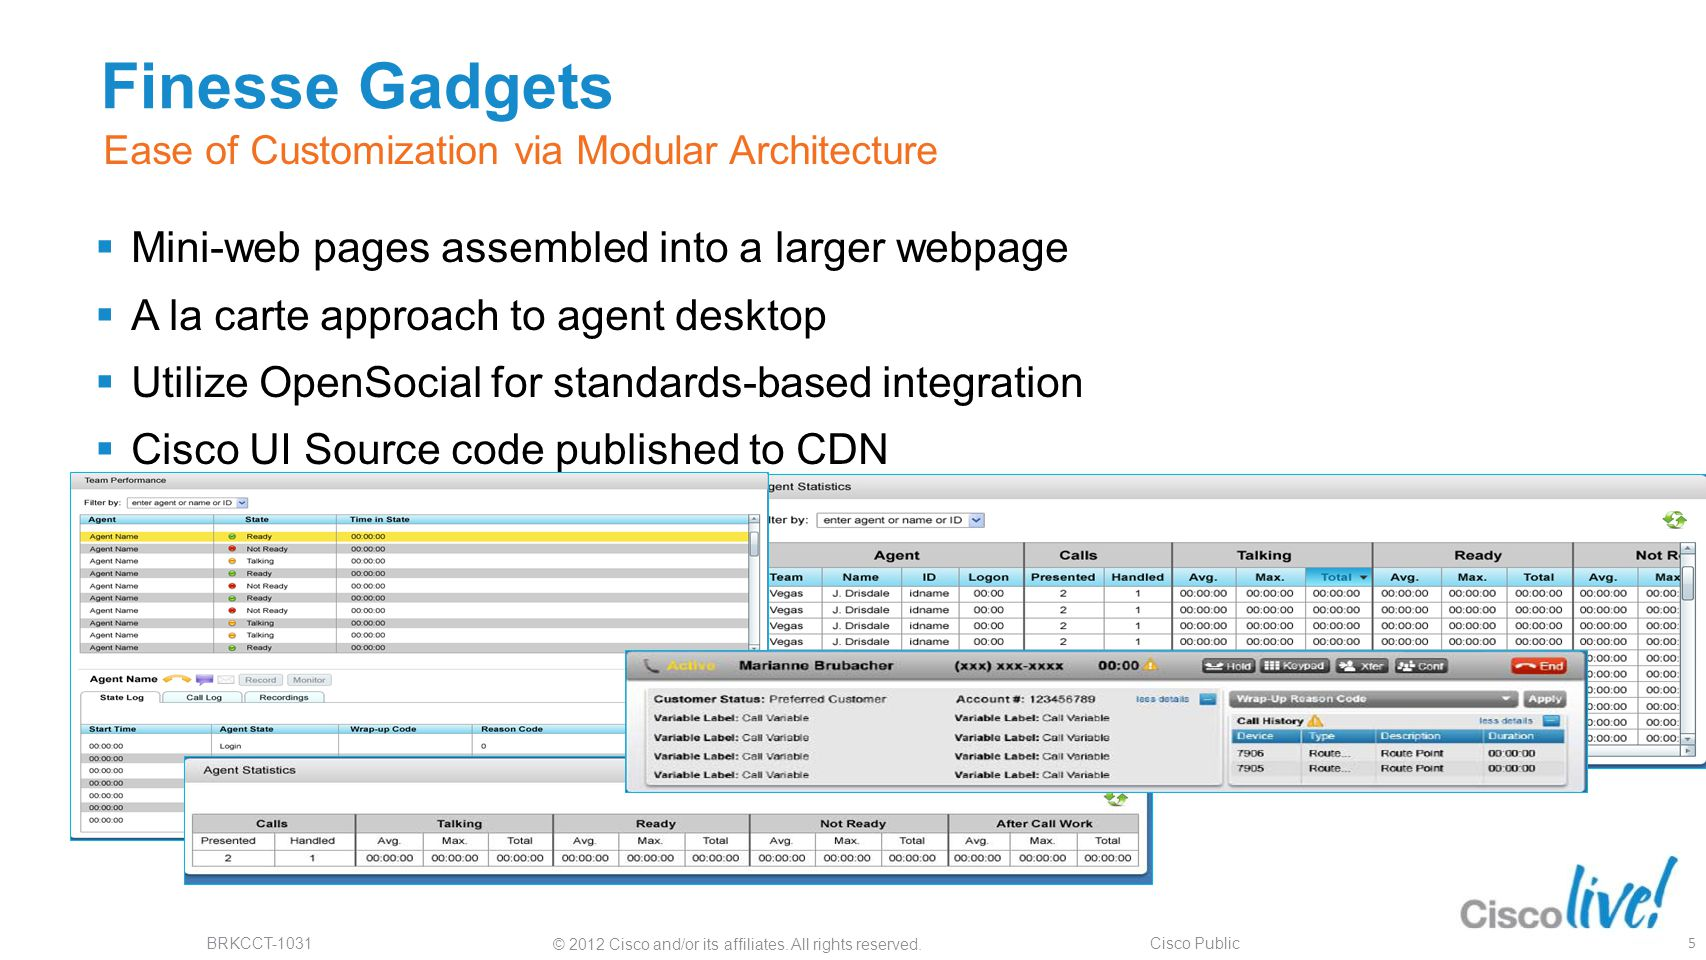 Finesse Gadgets Mini-web pages assembled into a larger webpage